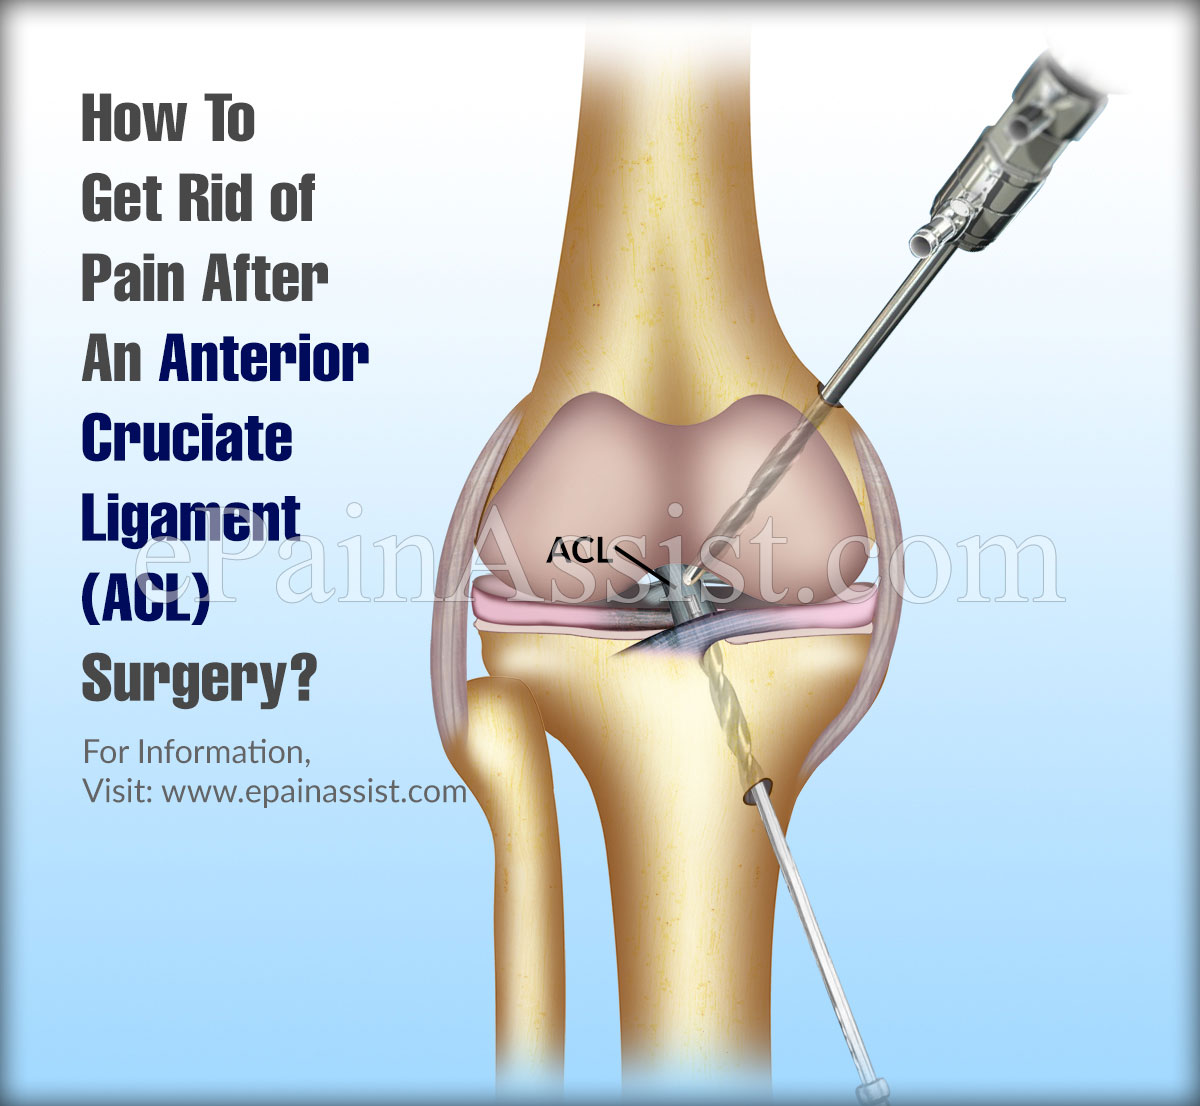 How To Get Rid of Pain After An Anterior Cruciate Ligament (ACL) Surgery?